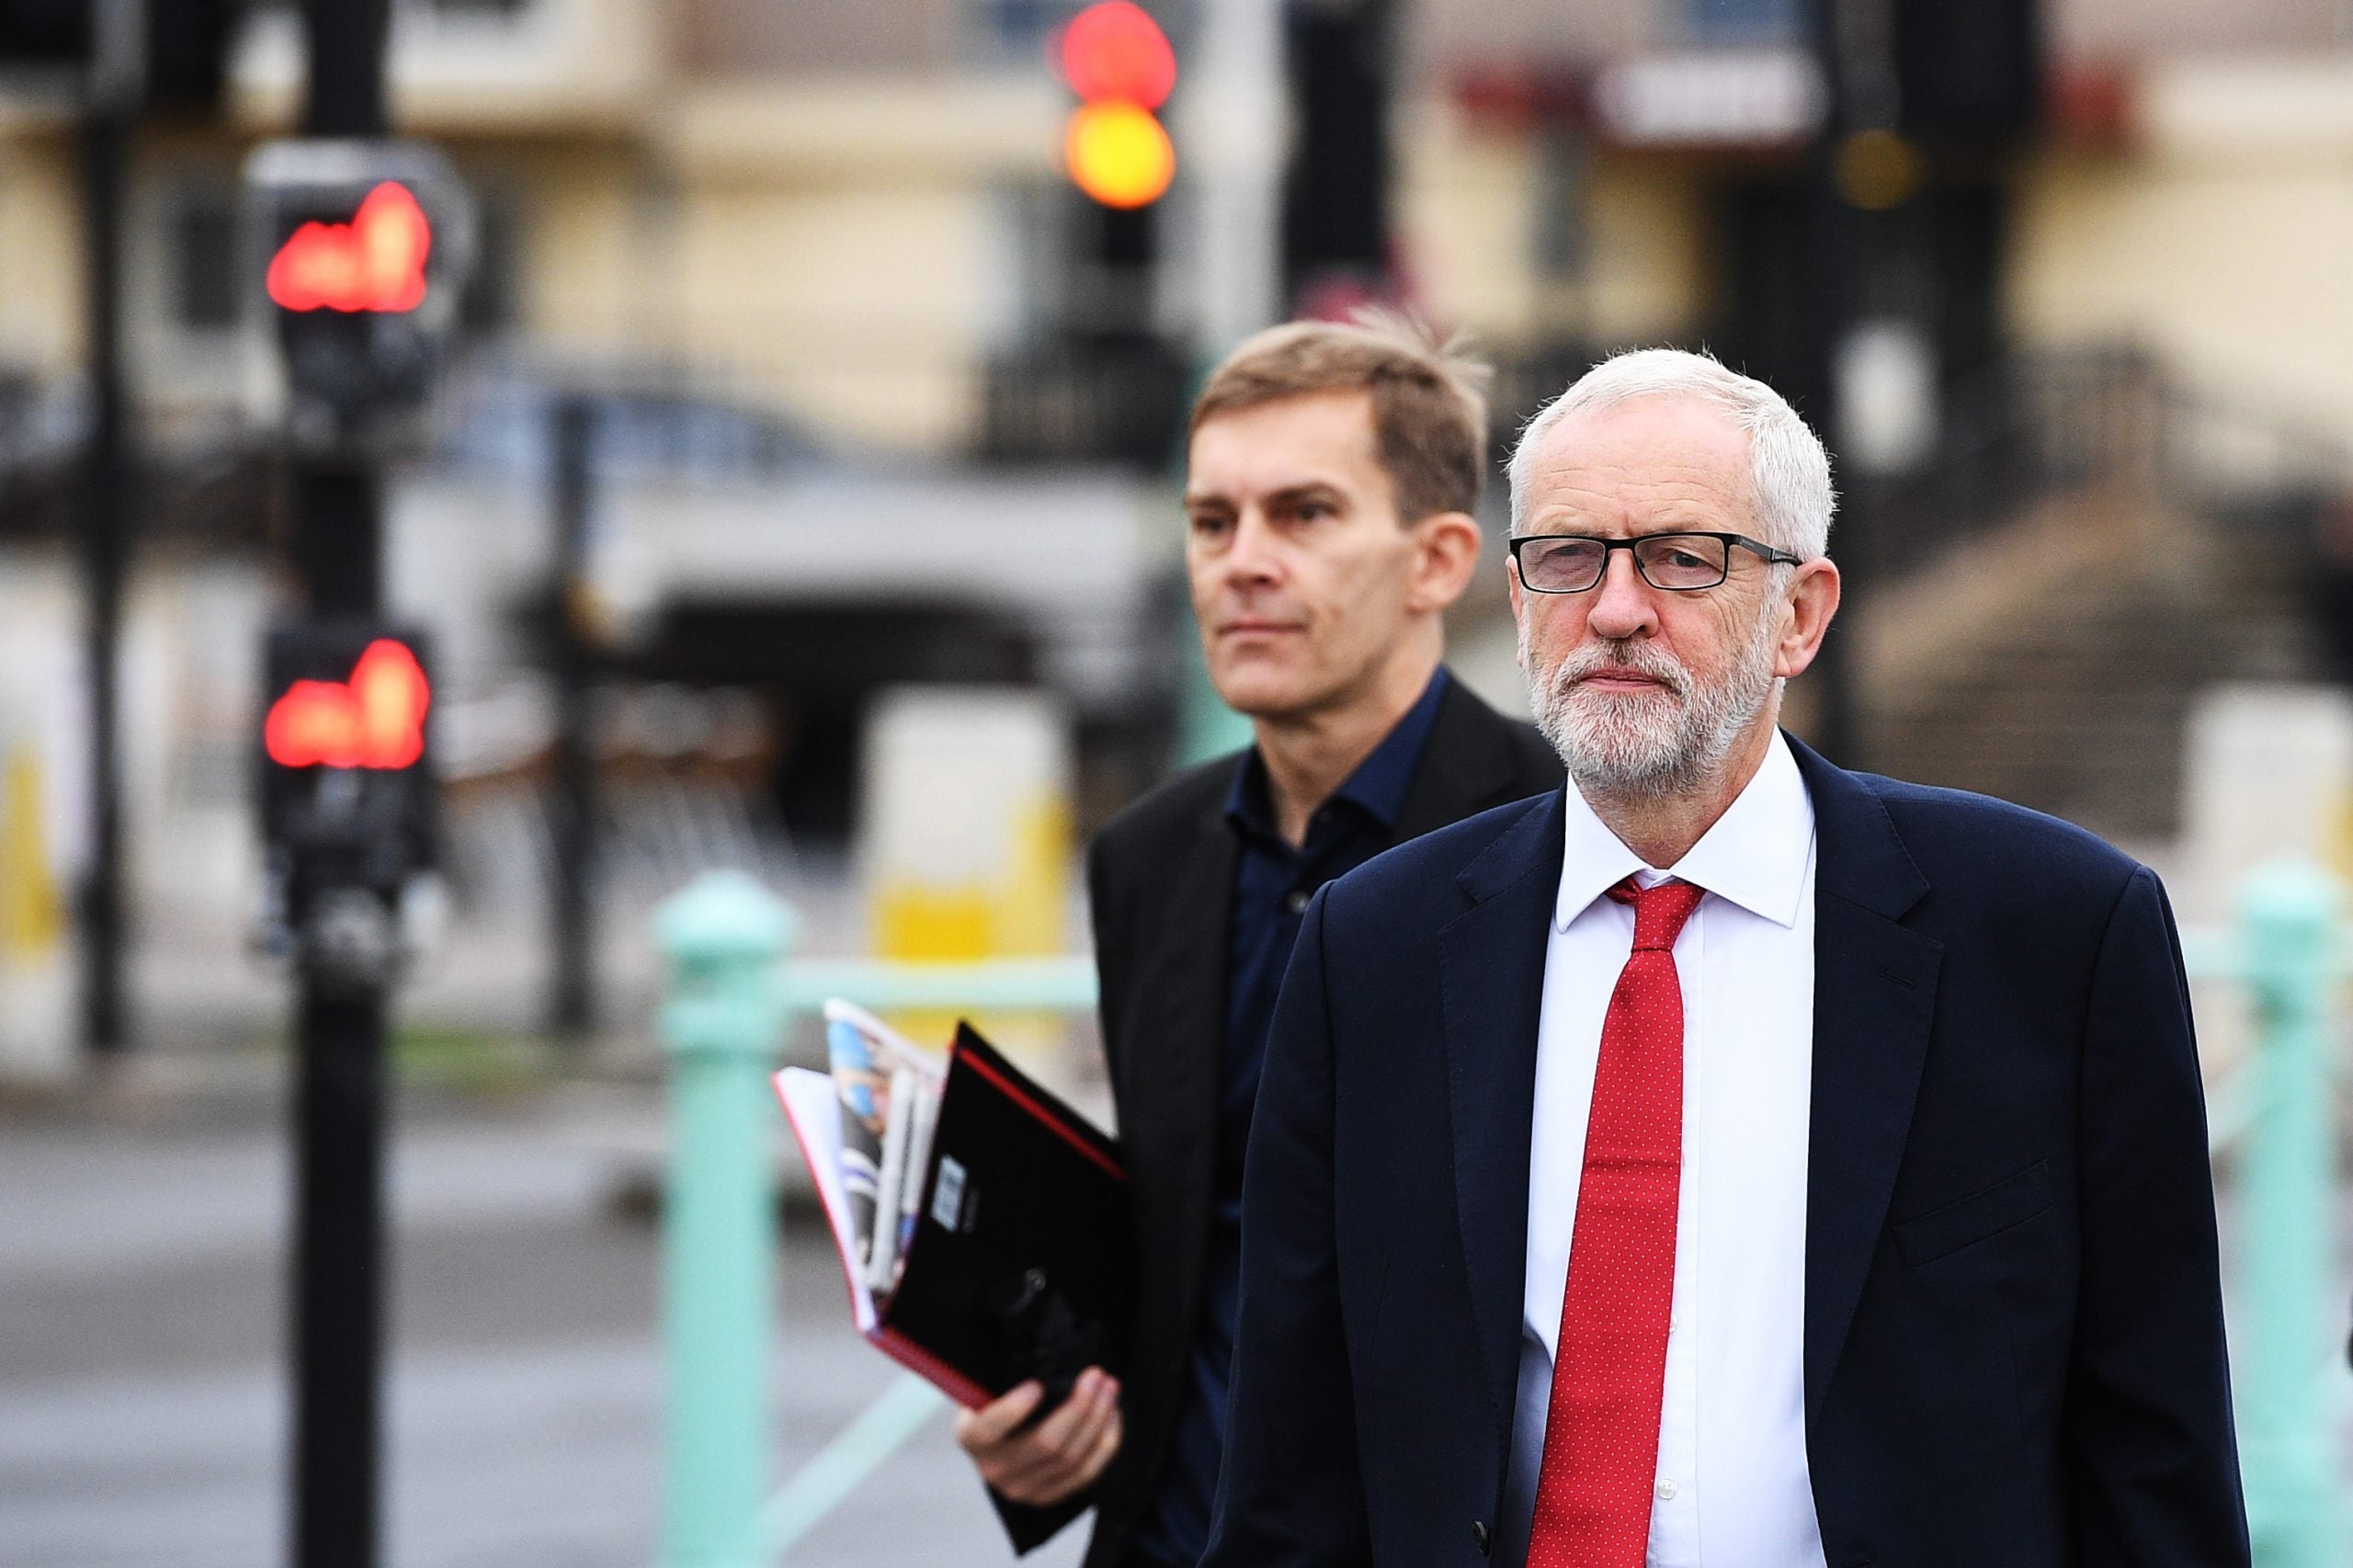 Len McCluskey: I had high hopes for Owen Jones's book on Corbynism. But I was disappointed